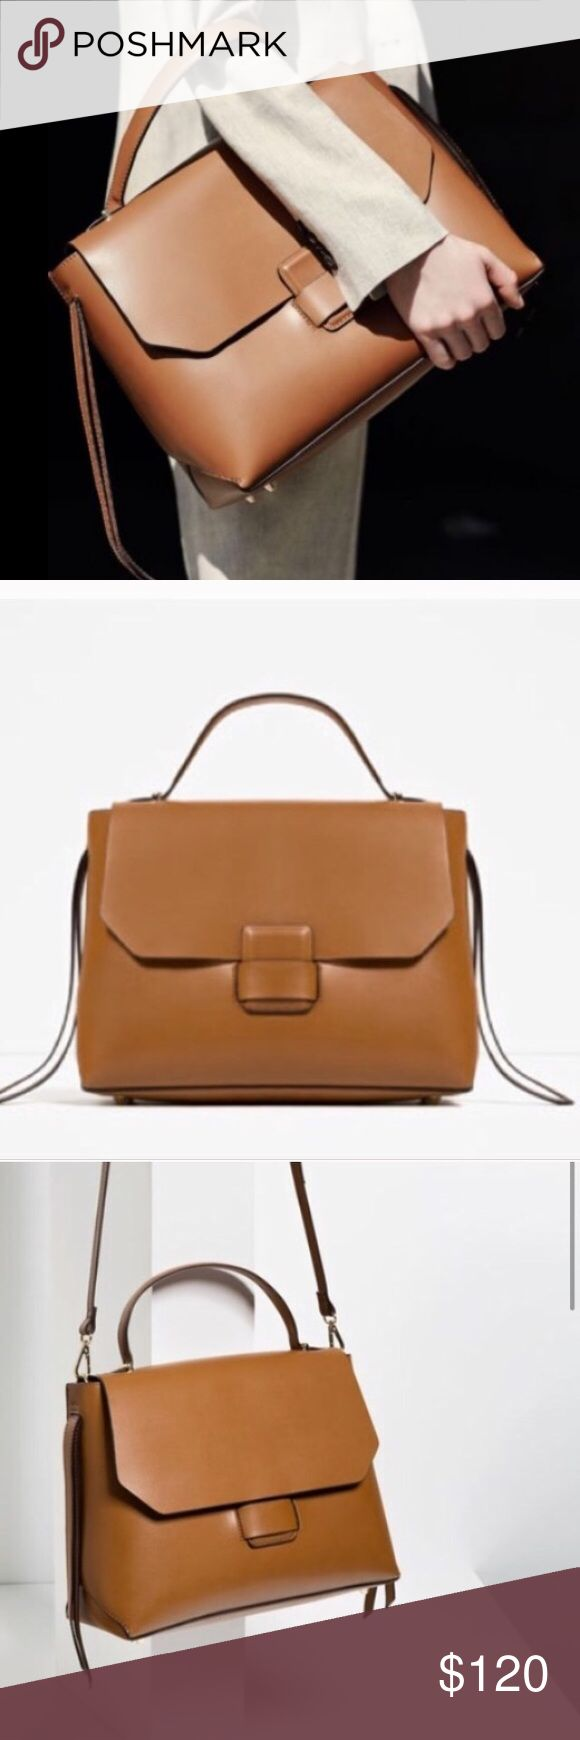 OPEN TO OFFERS Brand NWT Zara Minimal City Bag OFFERS ACCEPTED- don't let the price scare you  Amazing Leather Zara Minimal City bag. 2016 collection. The PERFECT bag for work and play. Large enough to fit your iPad, notebooks and goodies! SOLD OUT online and in stores. Comes brand new with tags in Zara box with Zara duster. Zara Bags